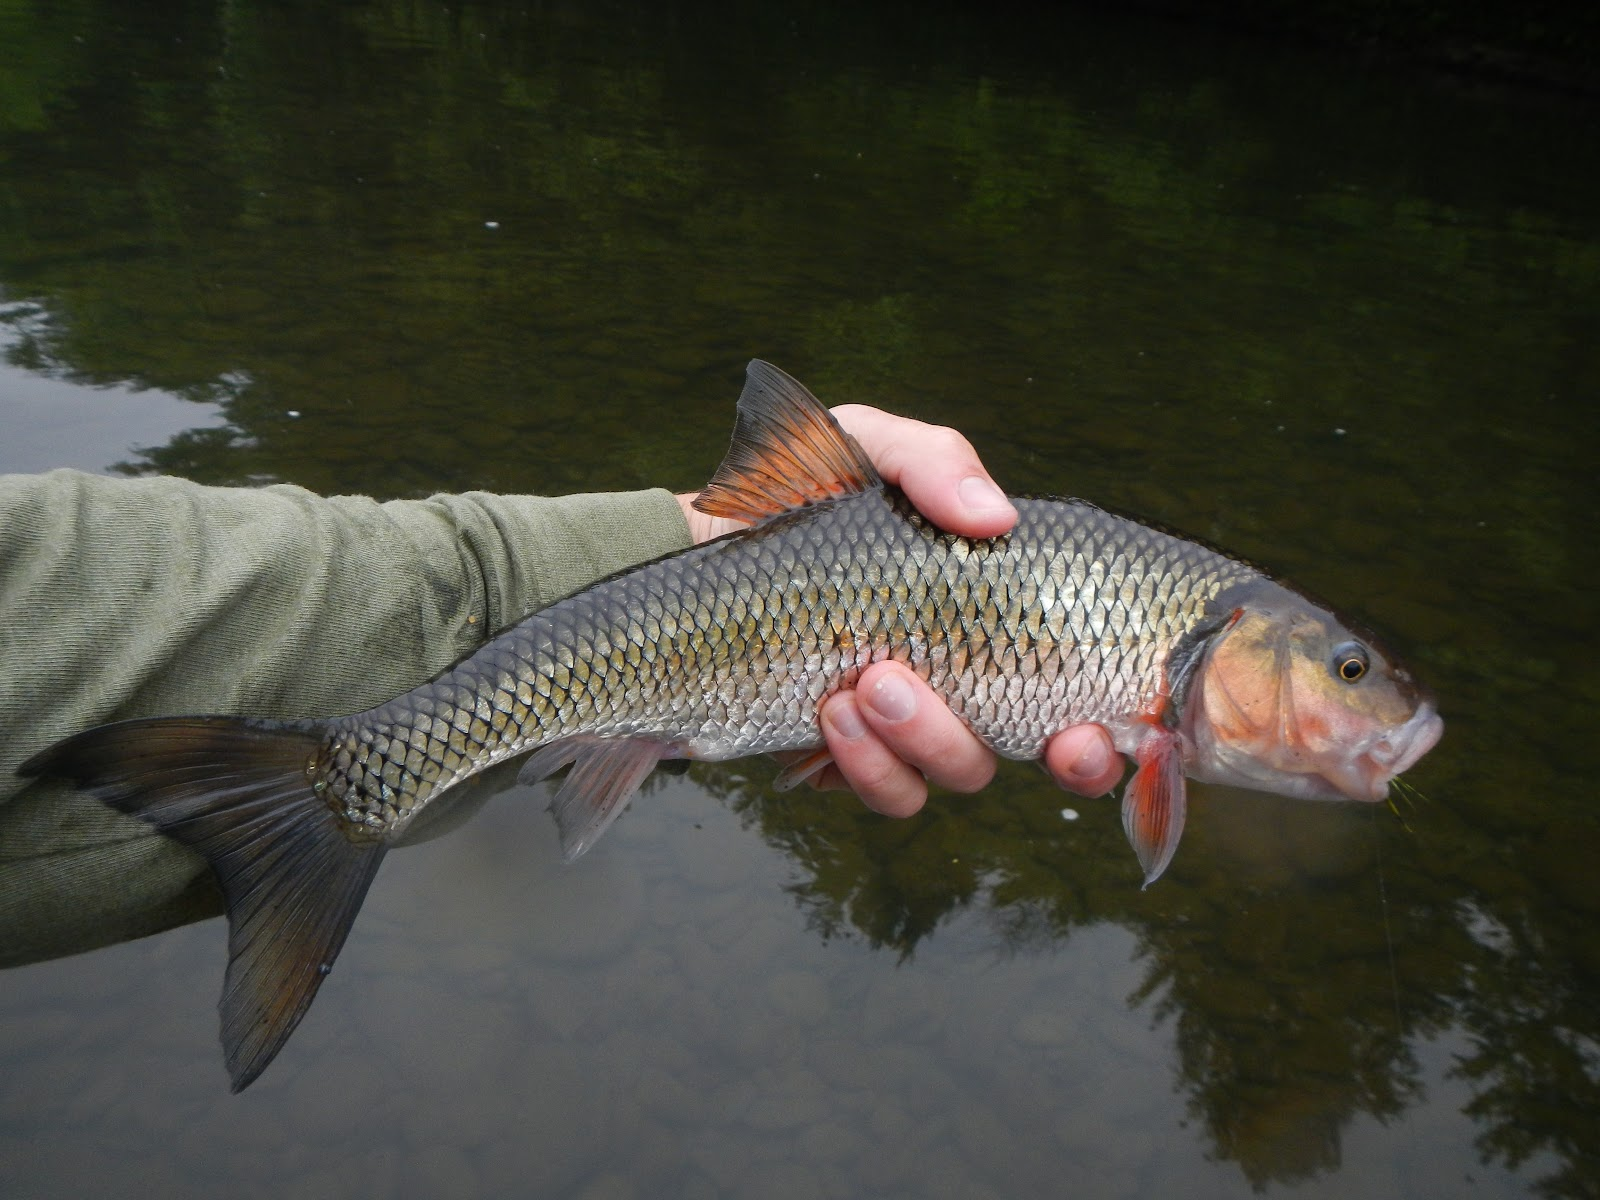 Paflyfish - Fallfish vs creek chub [Forums - Warm Water ...